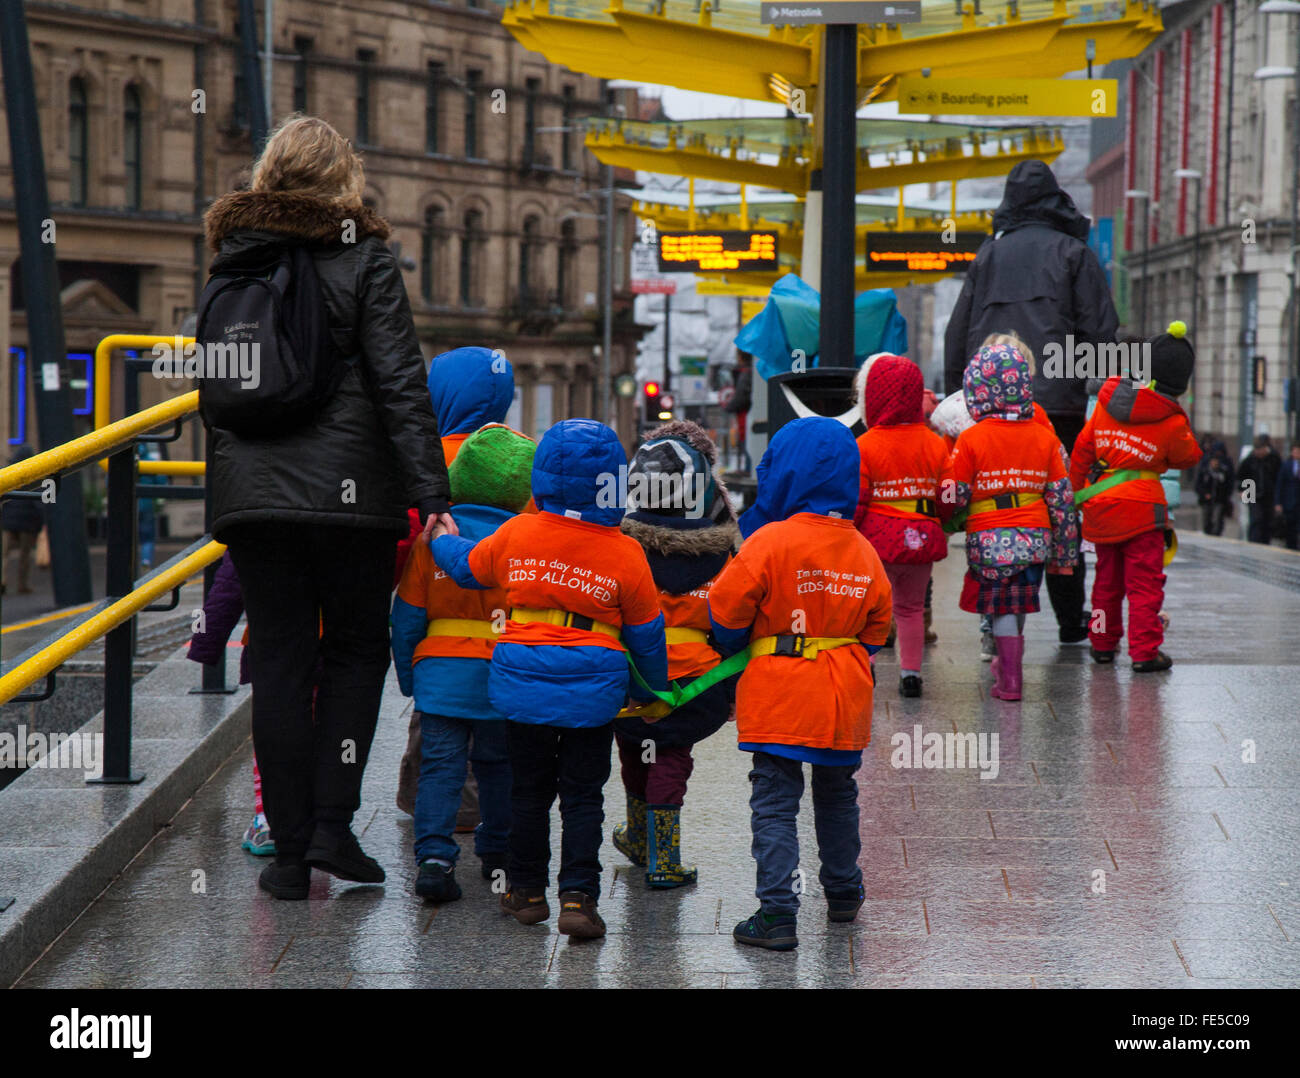 School children safeguarded, wearing protective fluorescent hi-vis hazard jackets during the Chinese New Year, Manchester, - Stock Image